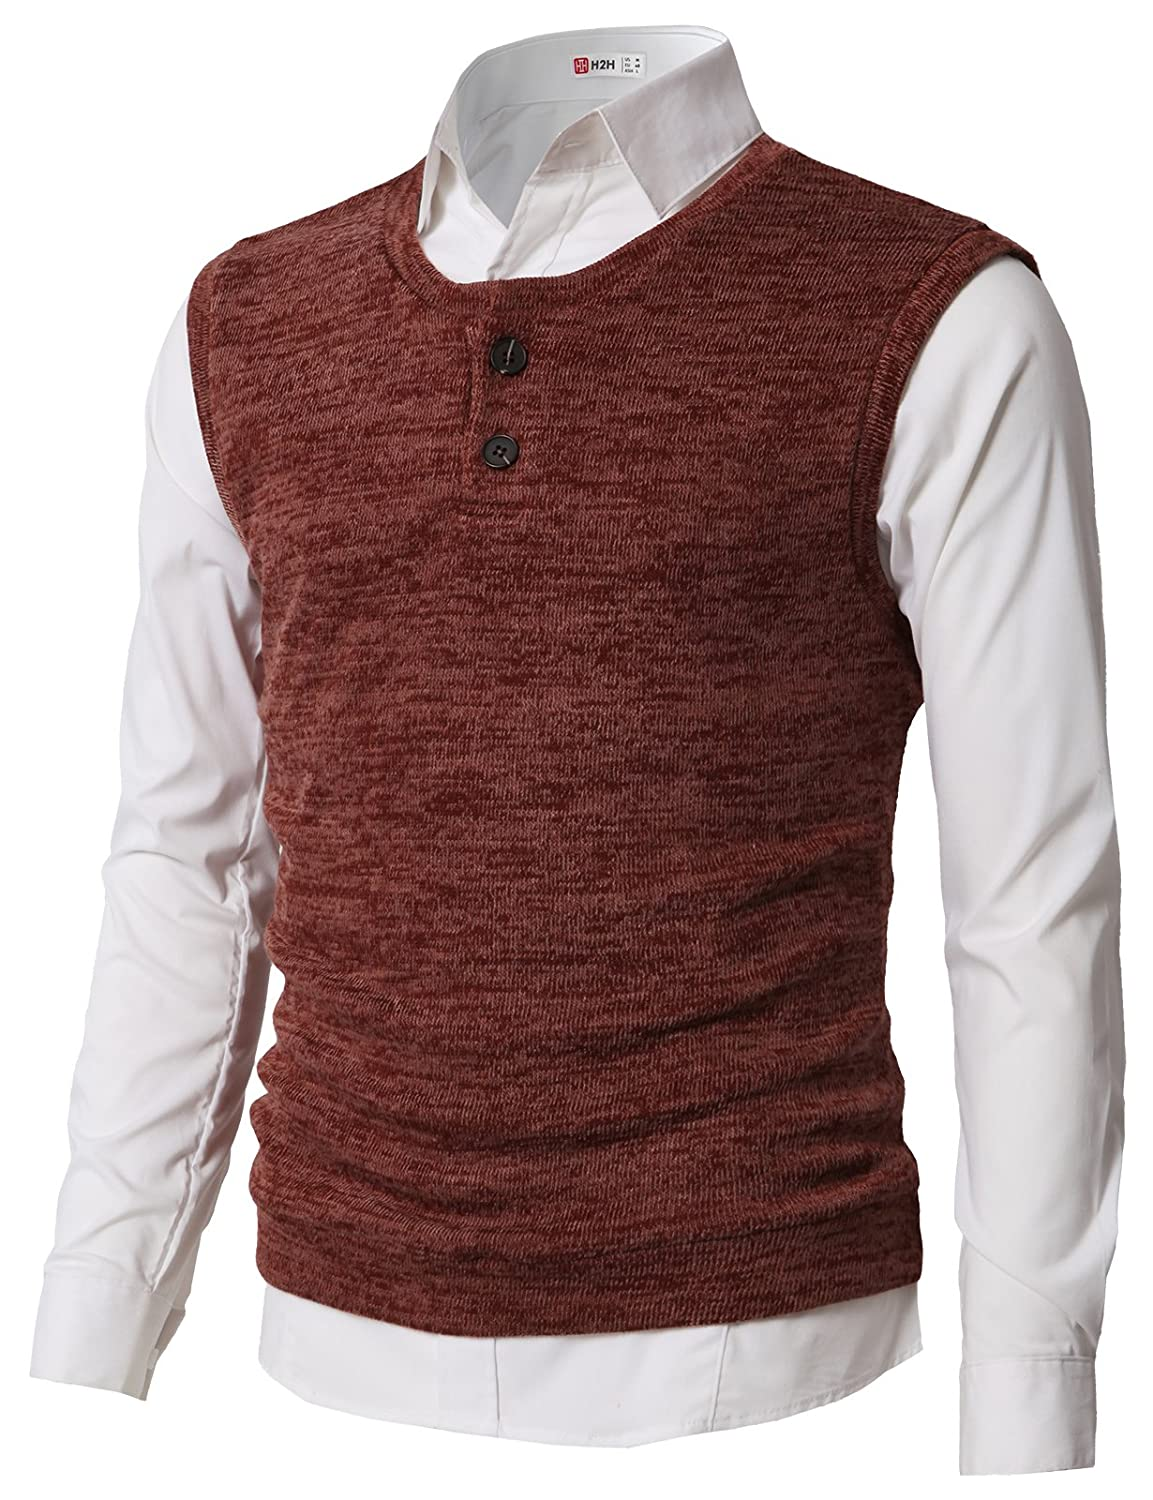 1193d8974 65% COTTON / 35% POLYESTER Designed by Korea. Pull On closure. Style No.  #CMOV043 - Super Soft & Stretch Basic Henley knit vest for dailywear  features ...